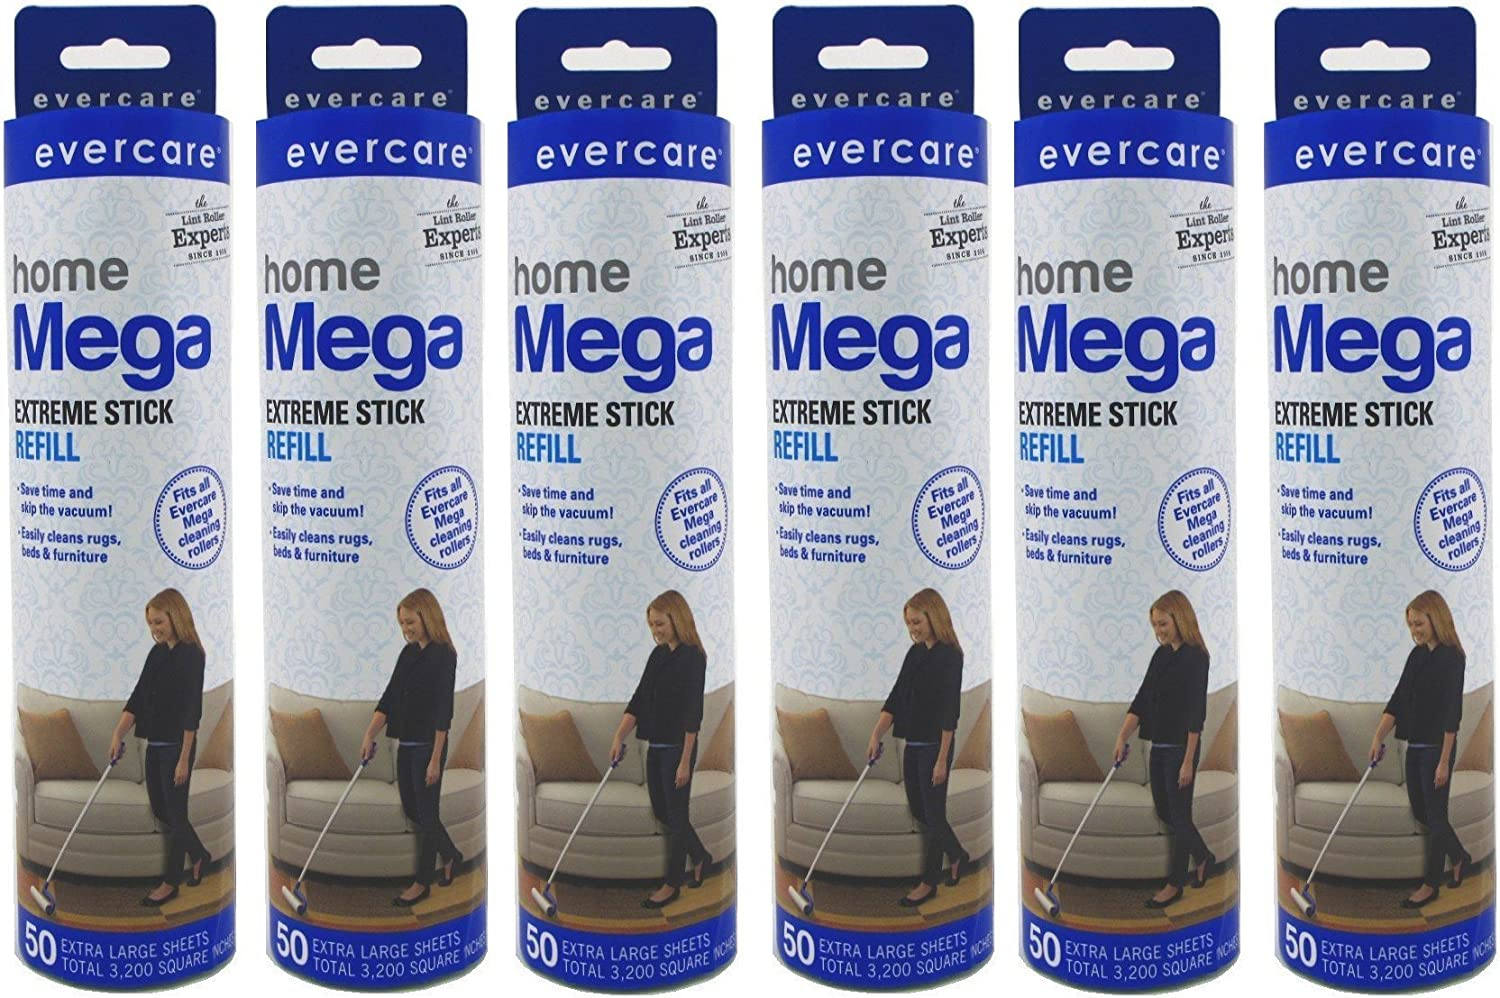 Evercare Mega Large Surface Roller Refill 50 Sheets